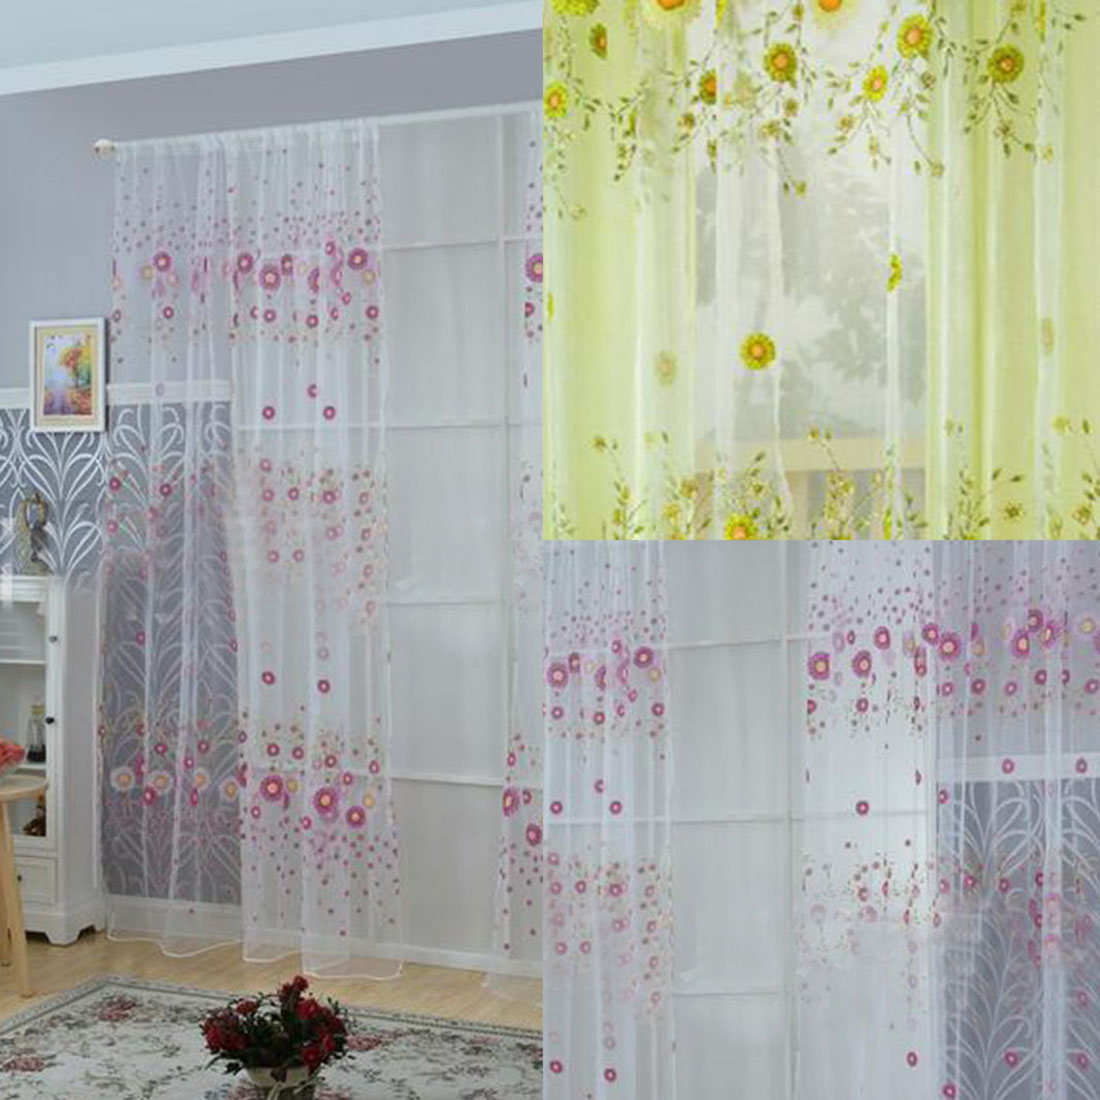 Curtains for bedroom 2016 - 2016 Curtains Sunflower Printed Voile Tulle Door Window Balcony Sheer Screening Curtain For Bedroom Living Room